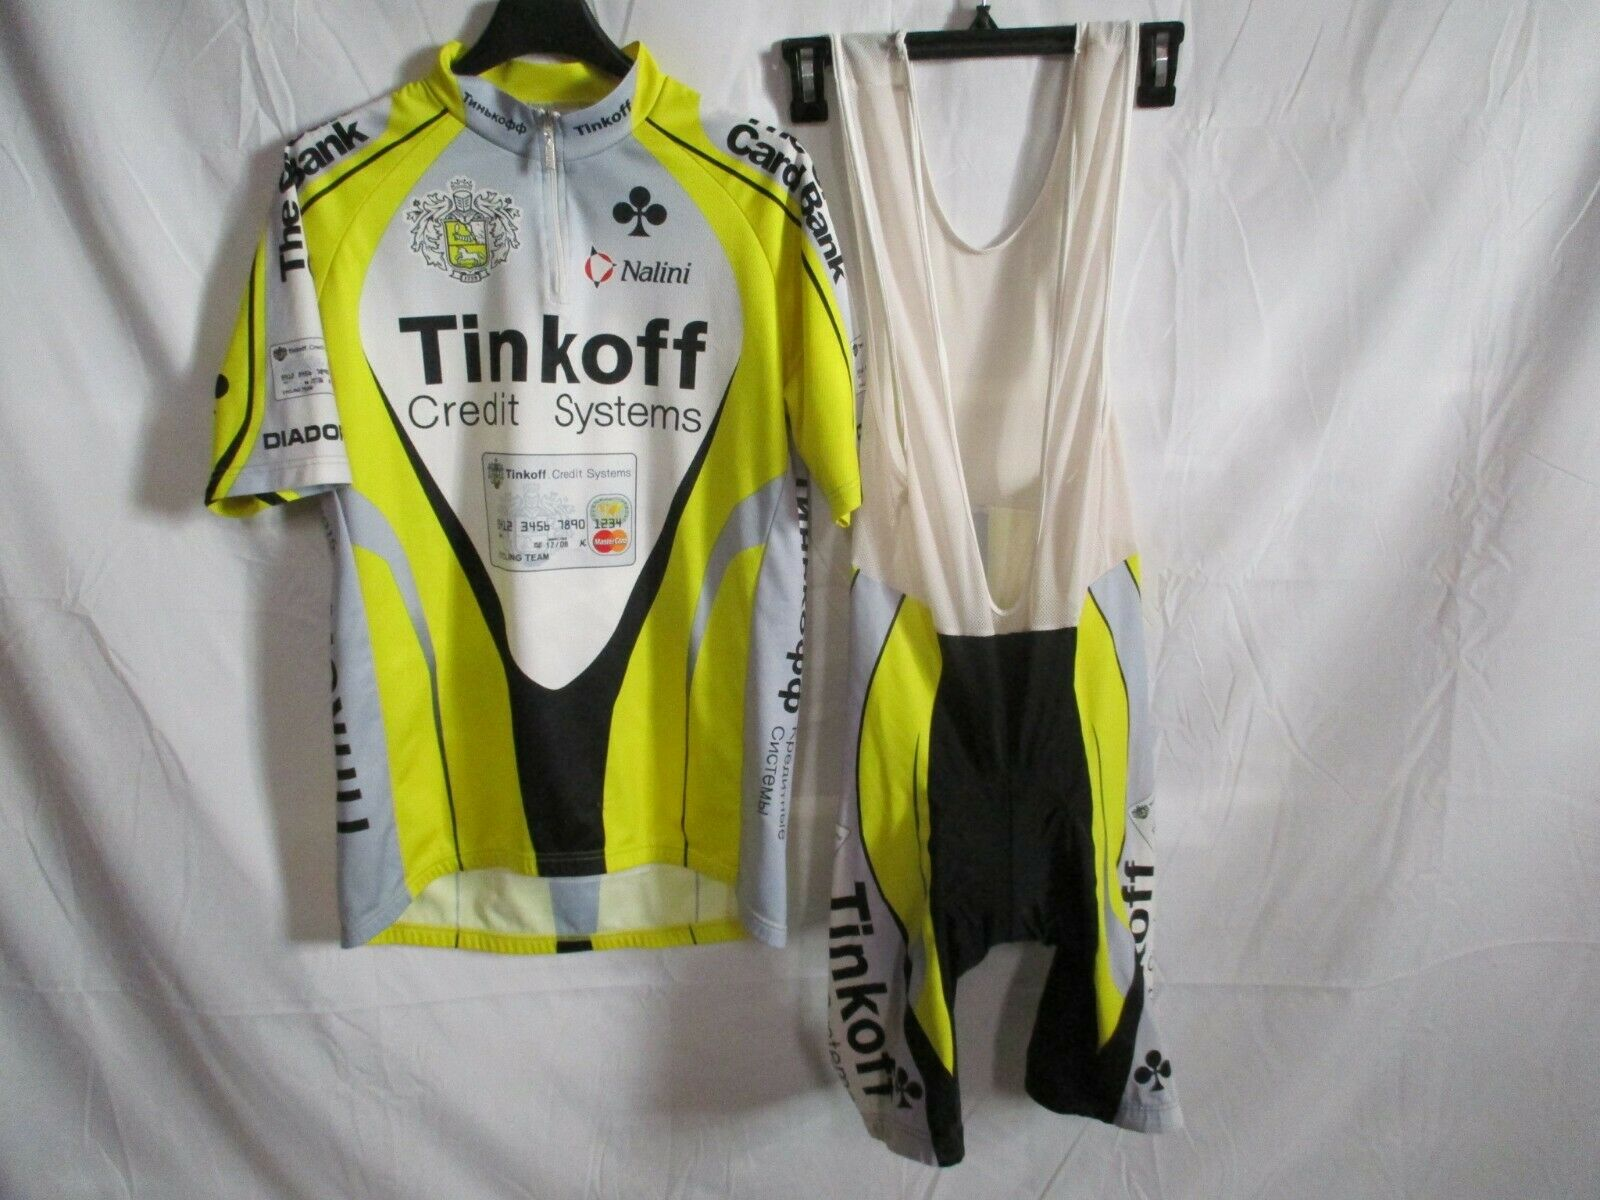 Jersey + bib shorts bicycle  combi tinkoff credit systems 2008 shirt maglia 4 l  high quality & fast shipping